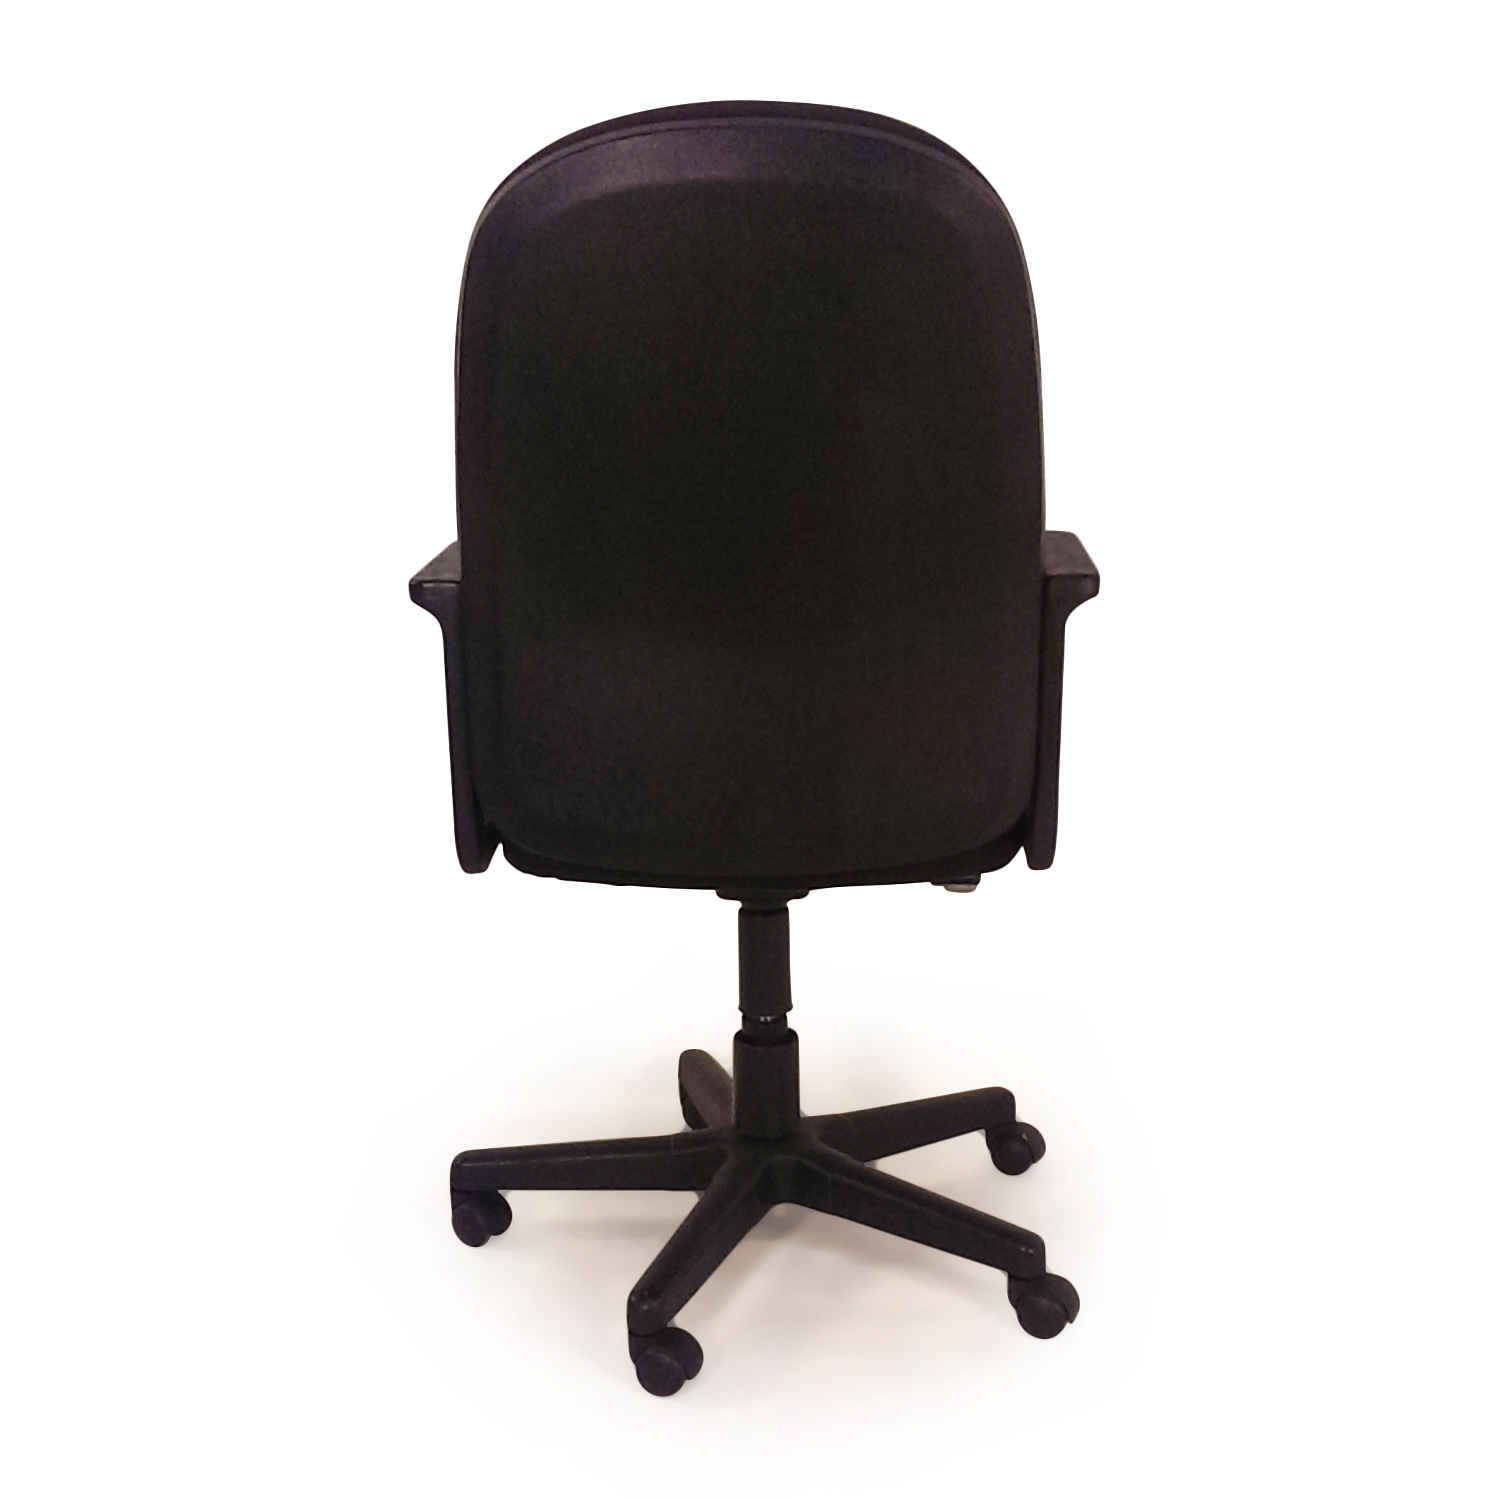 Buy Furniture Chairs Home Office Chairs Black Office